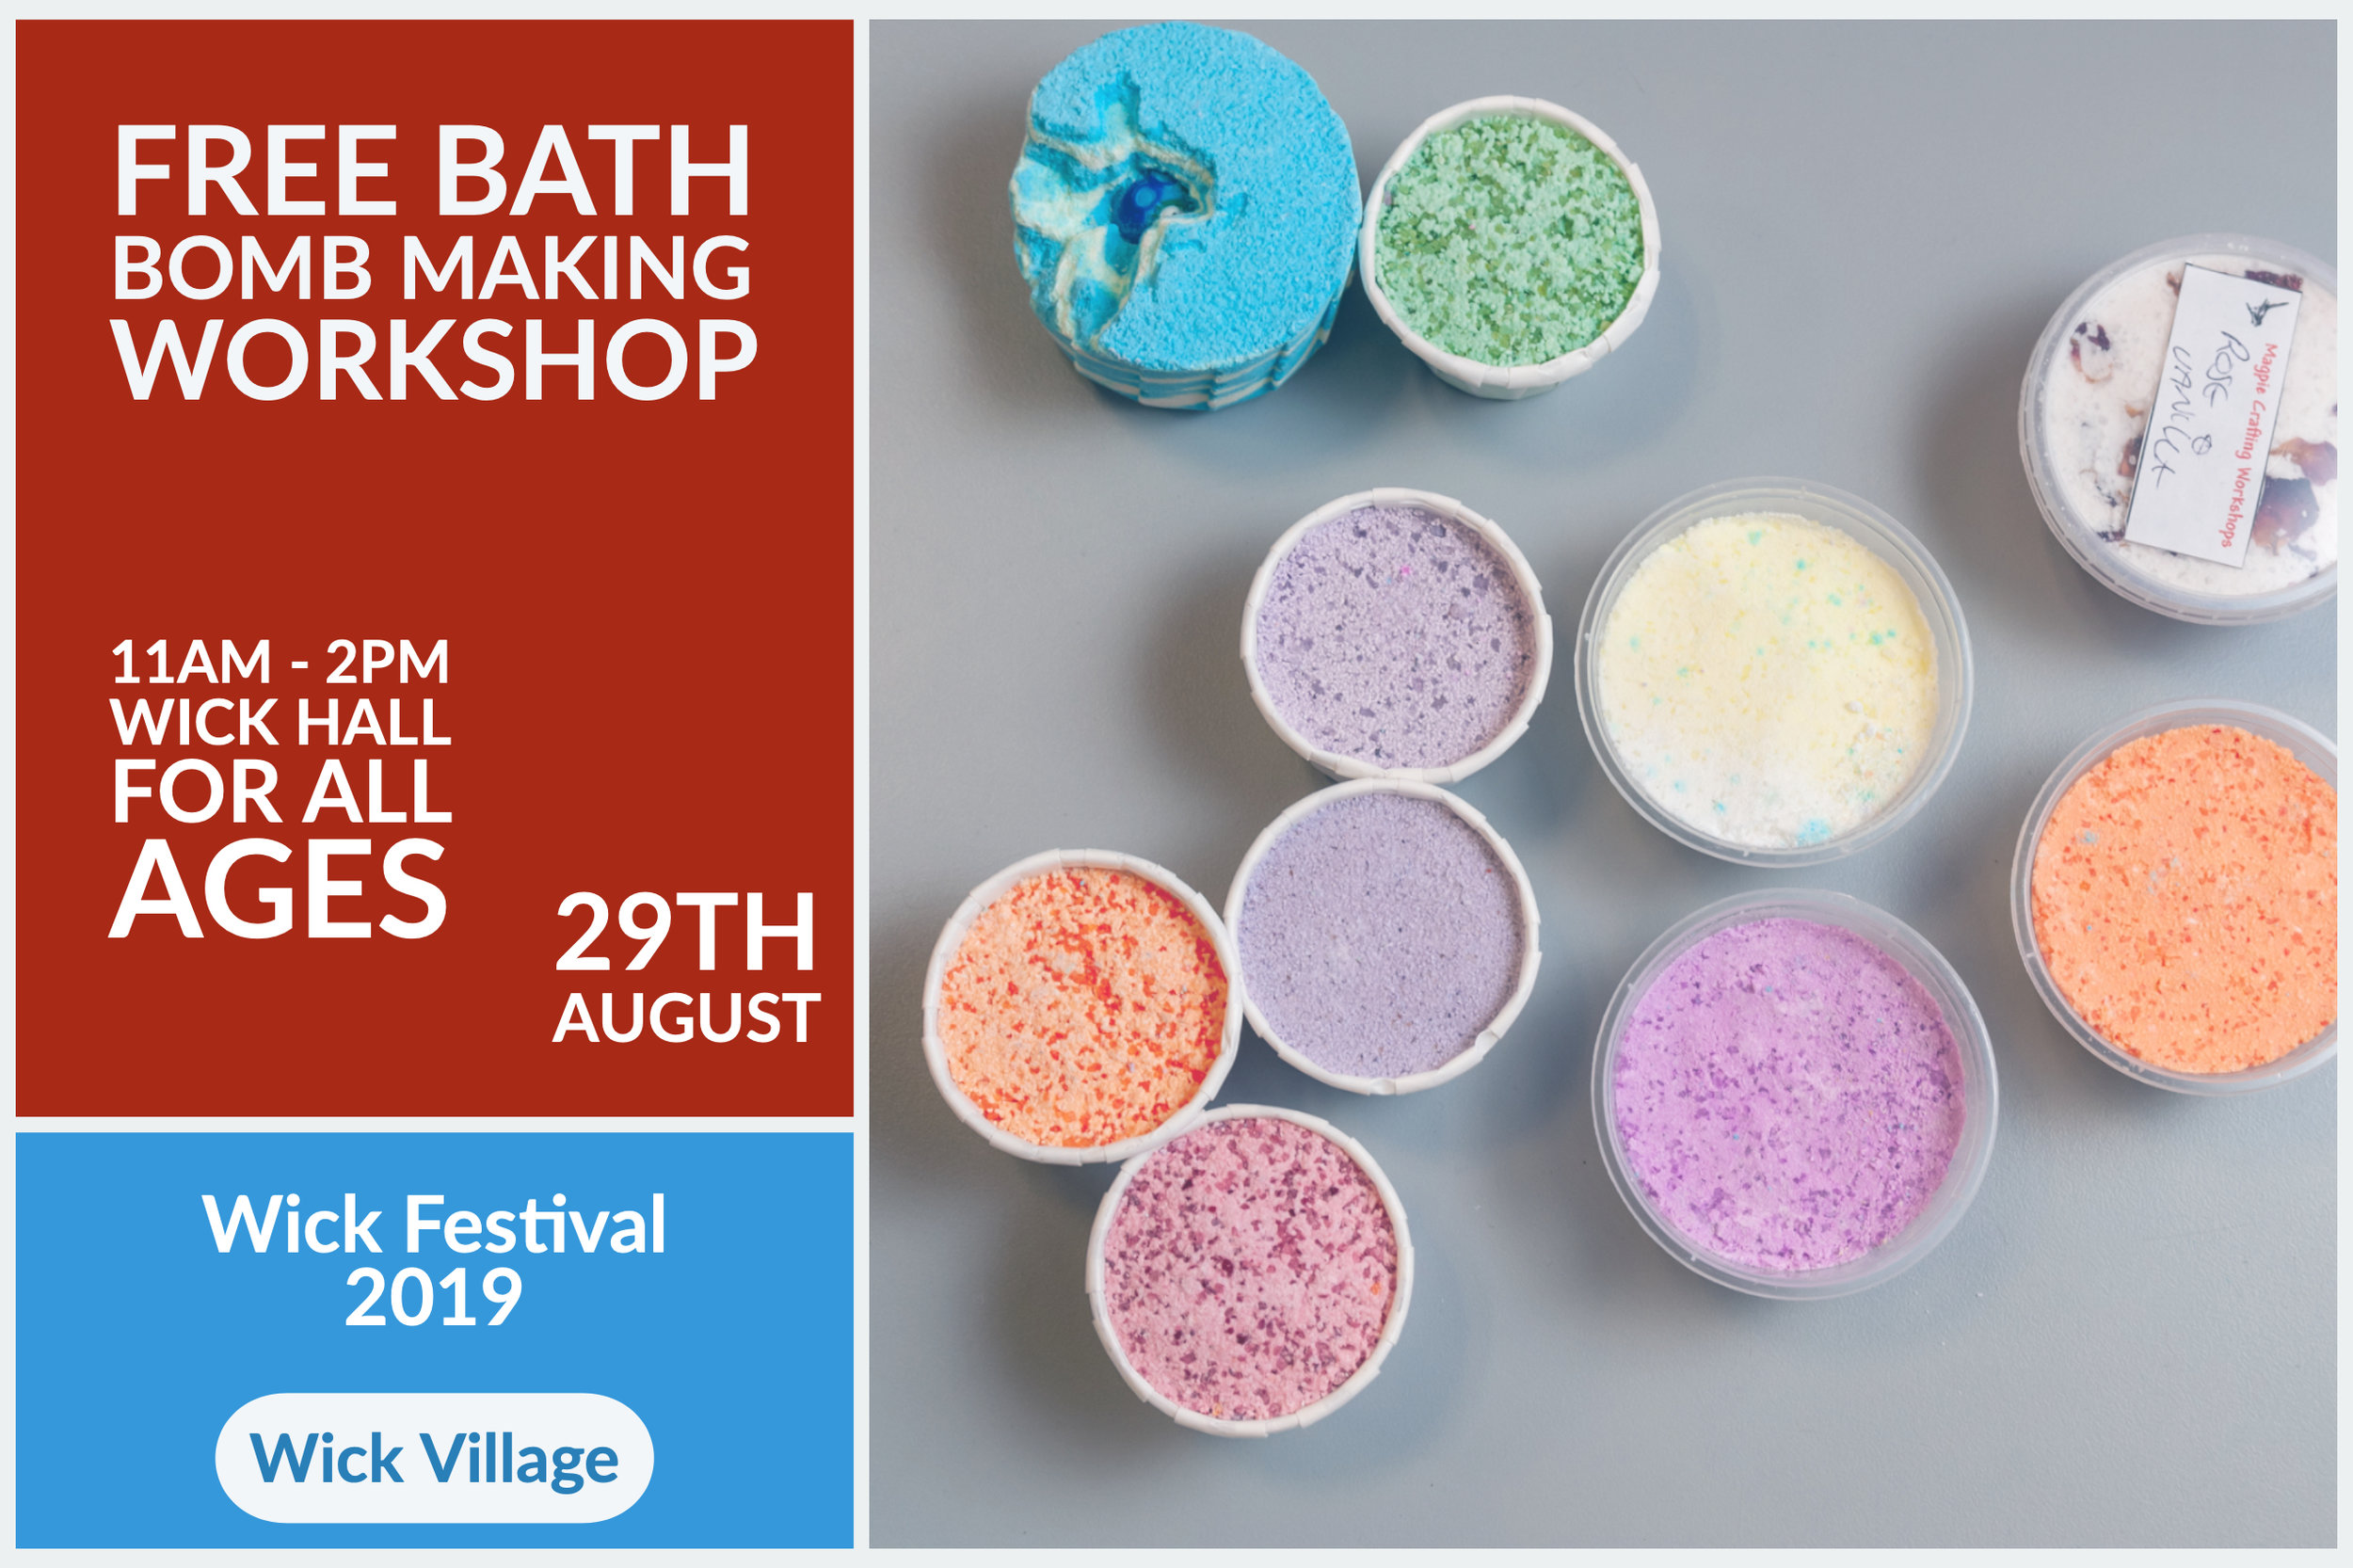 Wick Festival - Free Bath Bomb Making Workshop